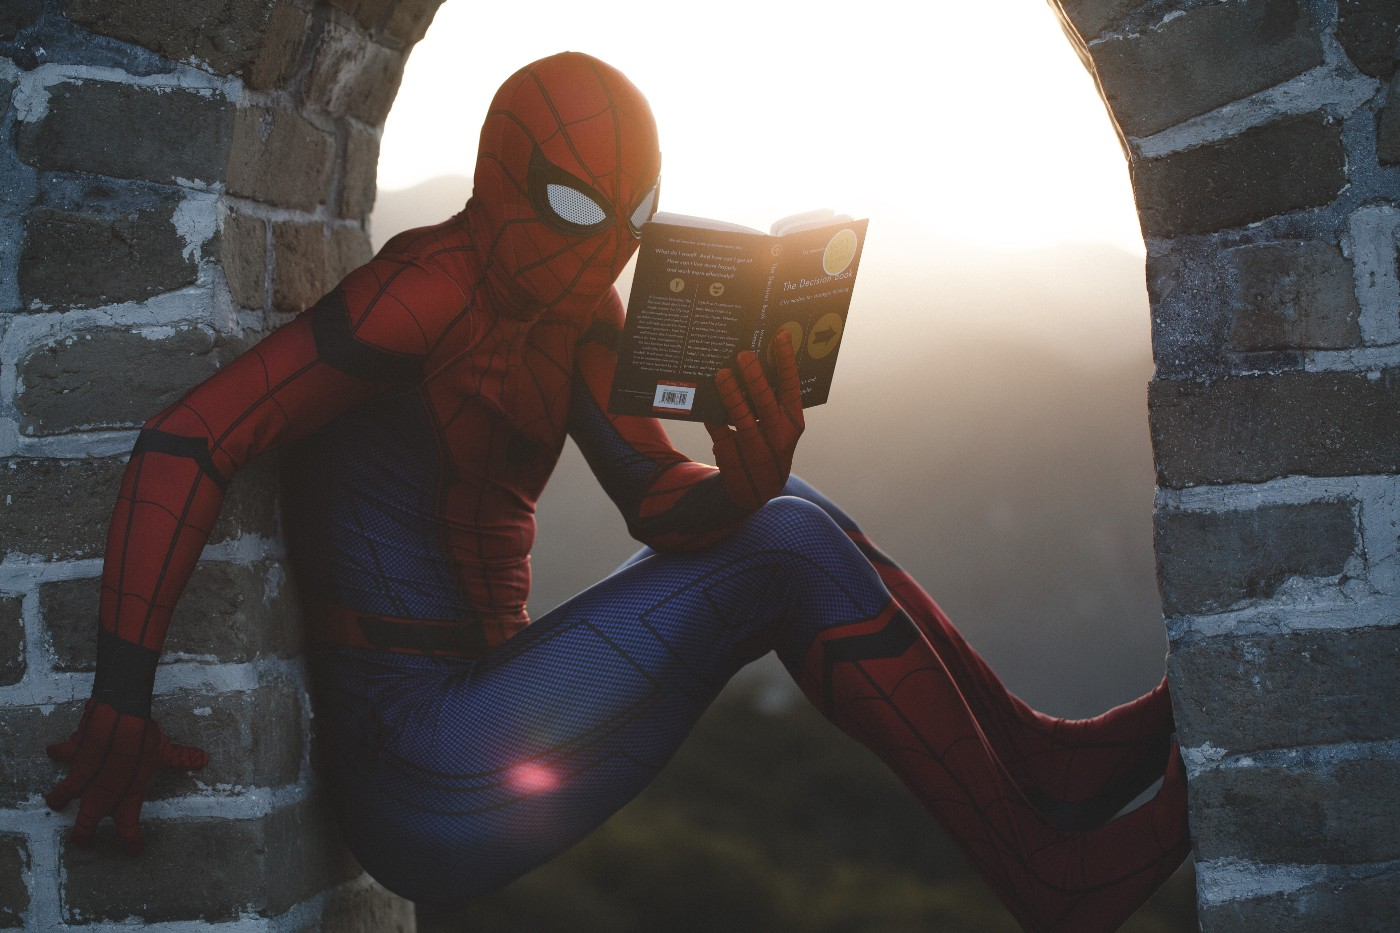 Spiderman reading about mesh.